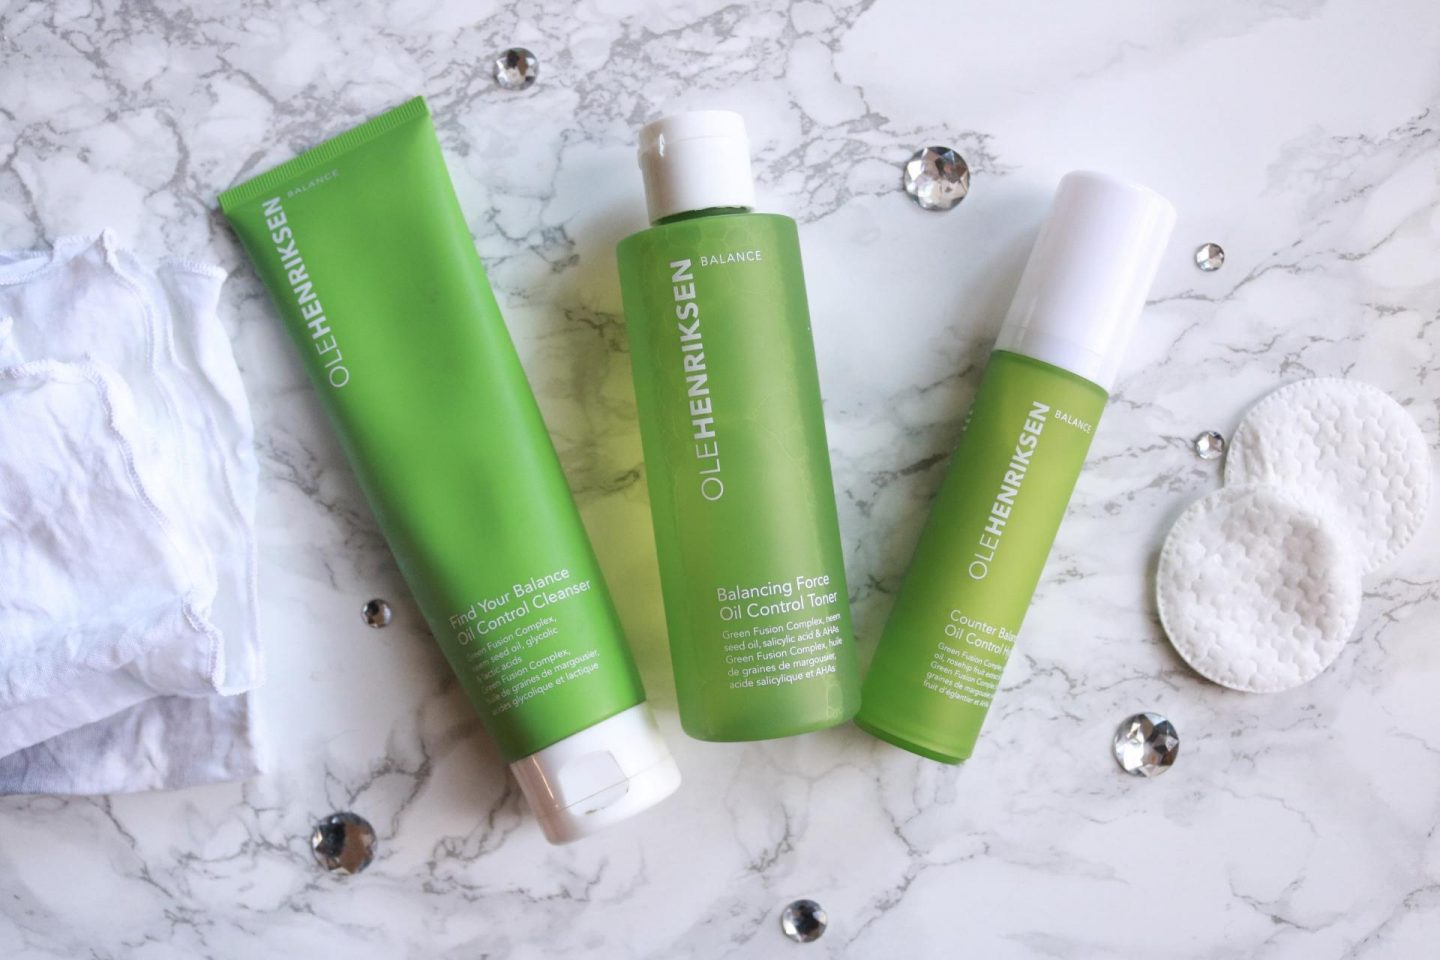 Glowing with Ole Henriksen Skincare